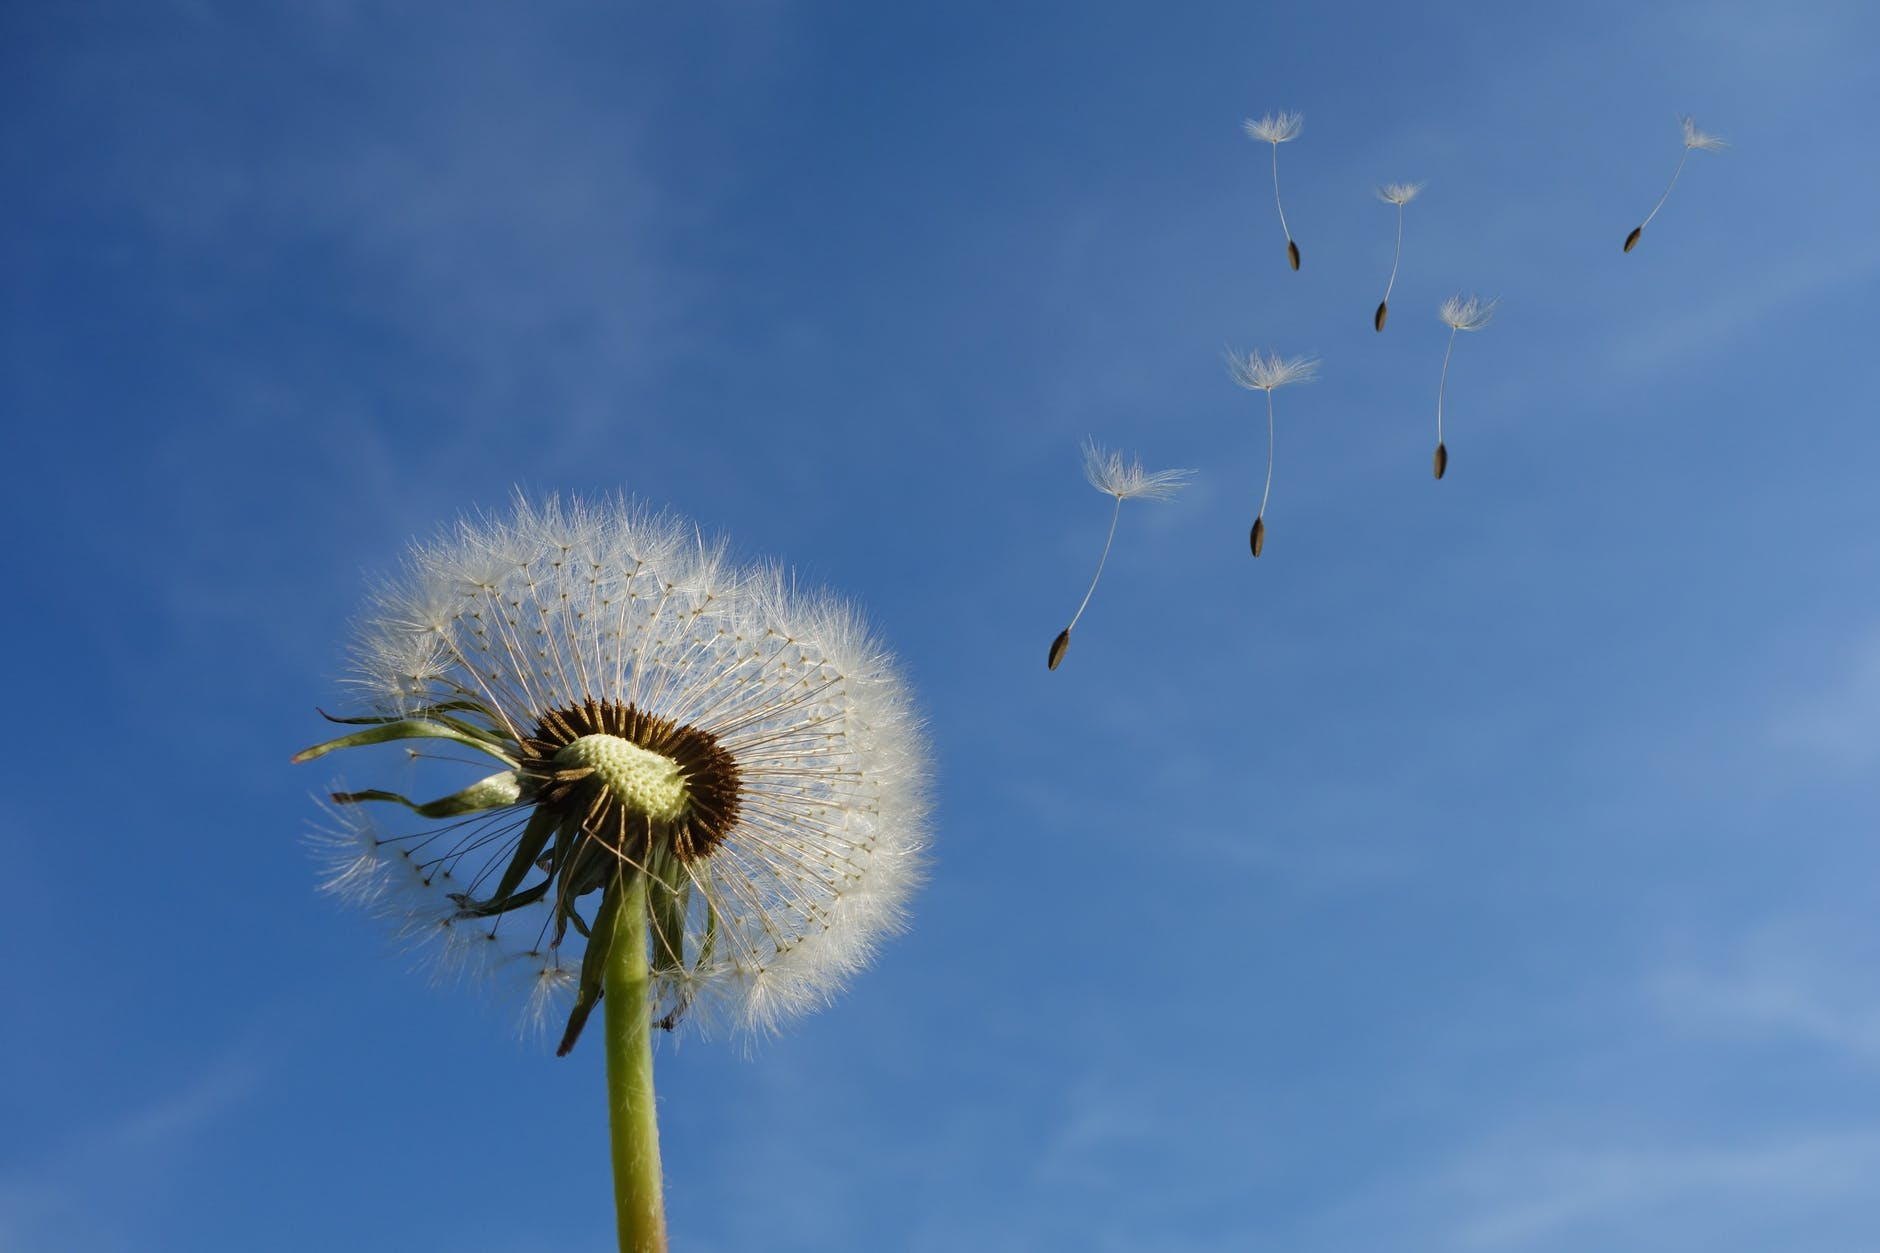 A photo of a dandelion and it's seeds being carried away in the wind.